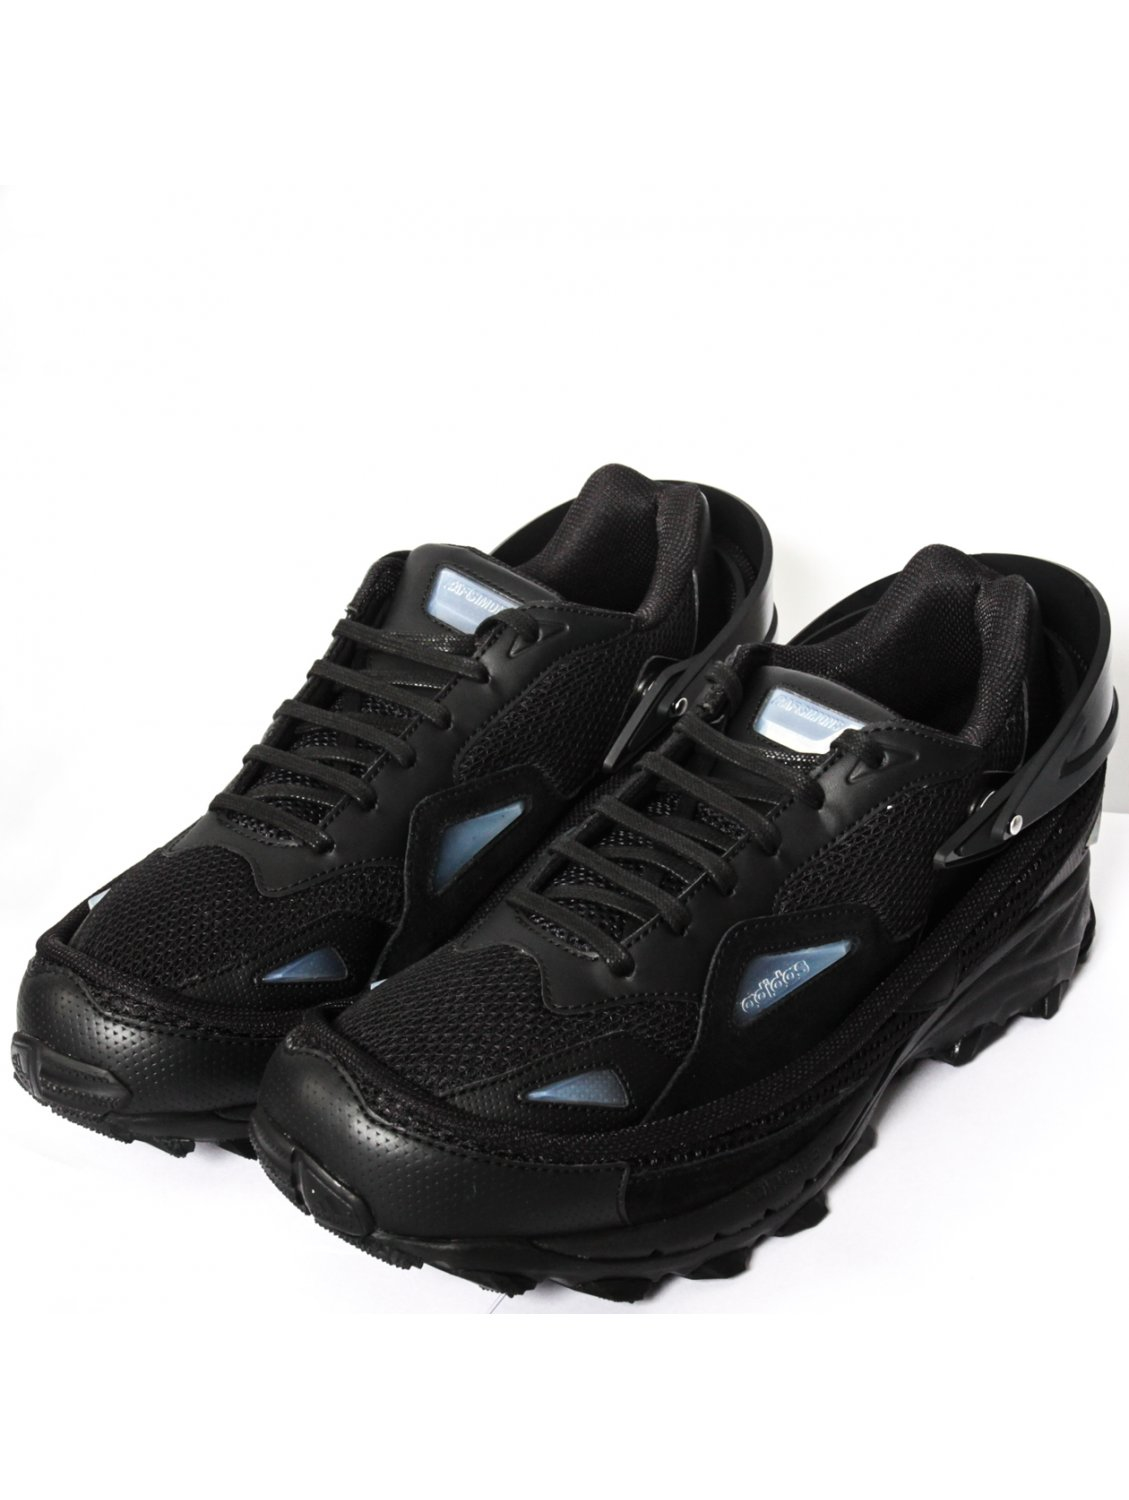 800ef2f03fdb Raf Simons Adidas Response Trail Strap Sneakers Black in Black for ...